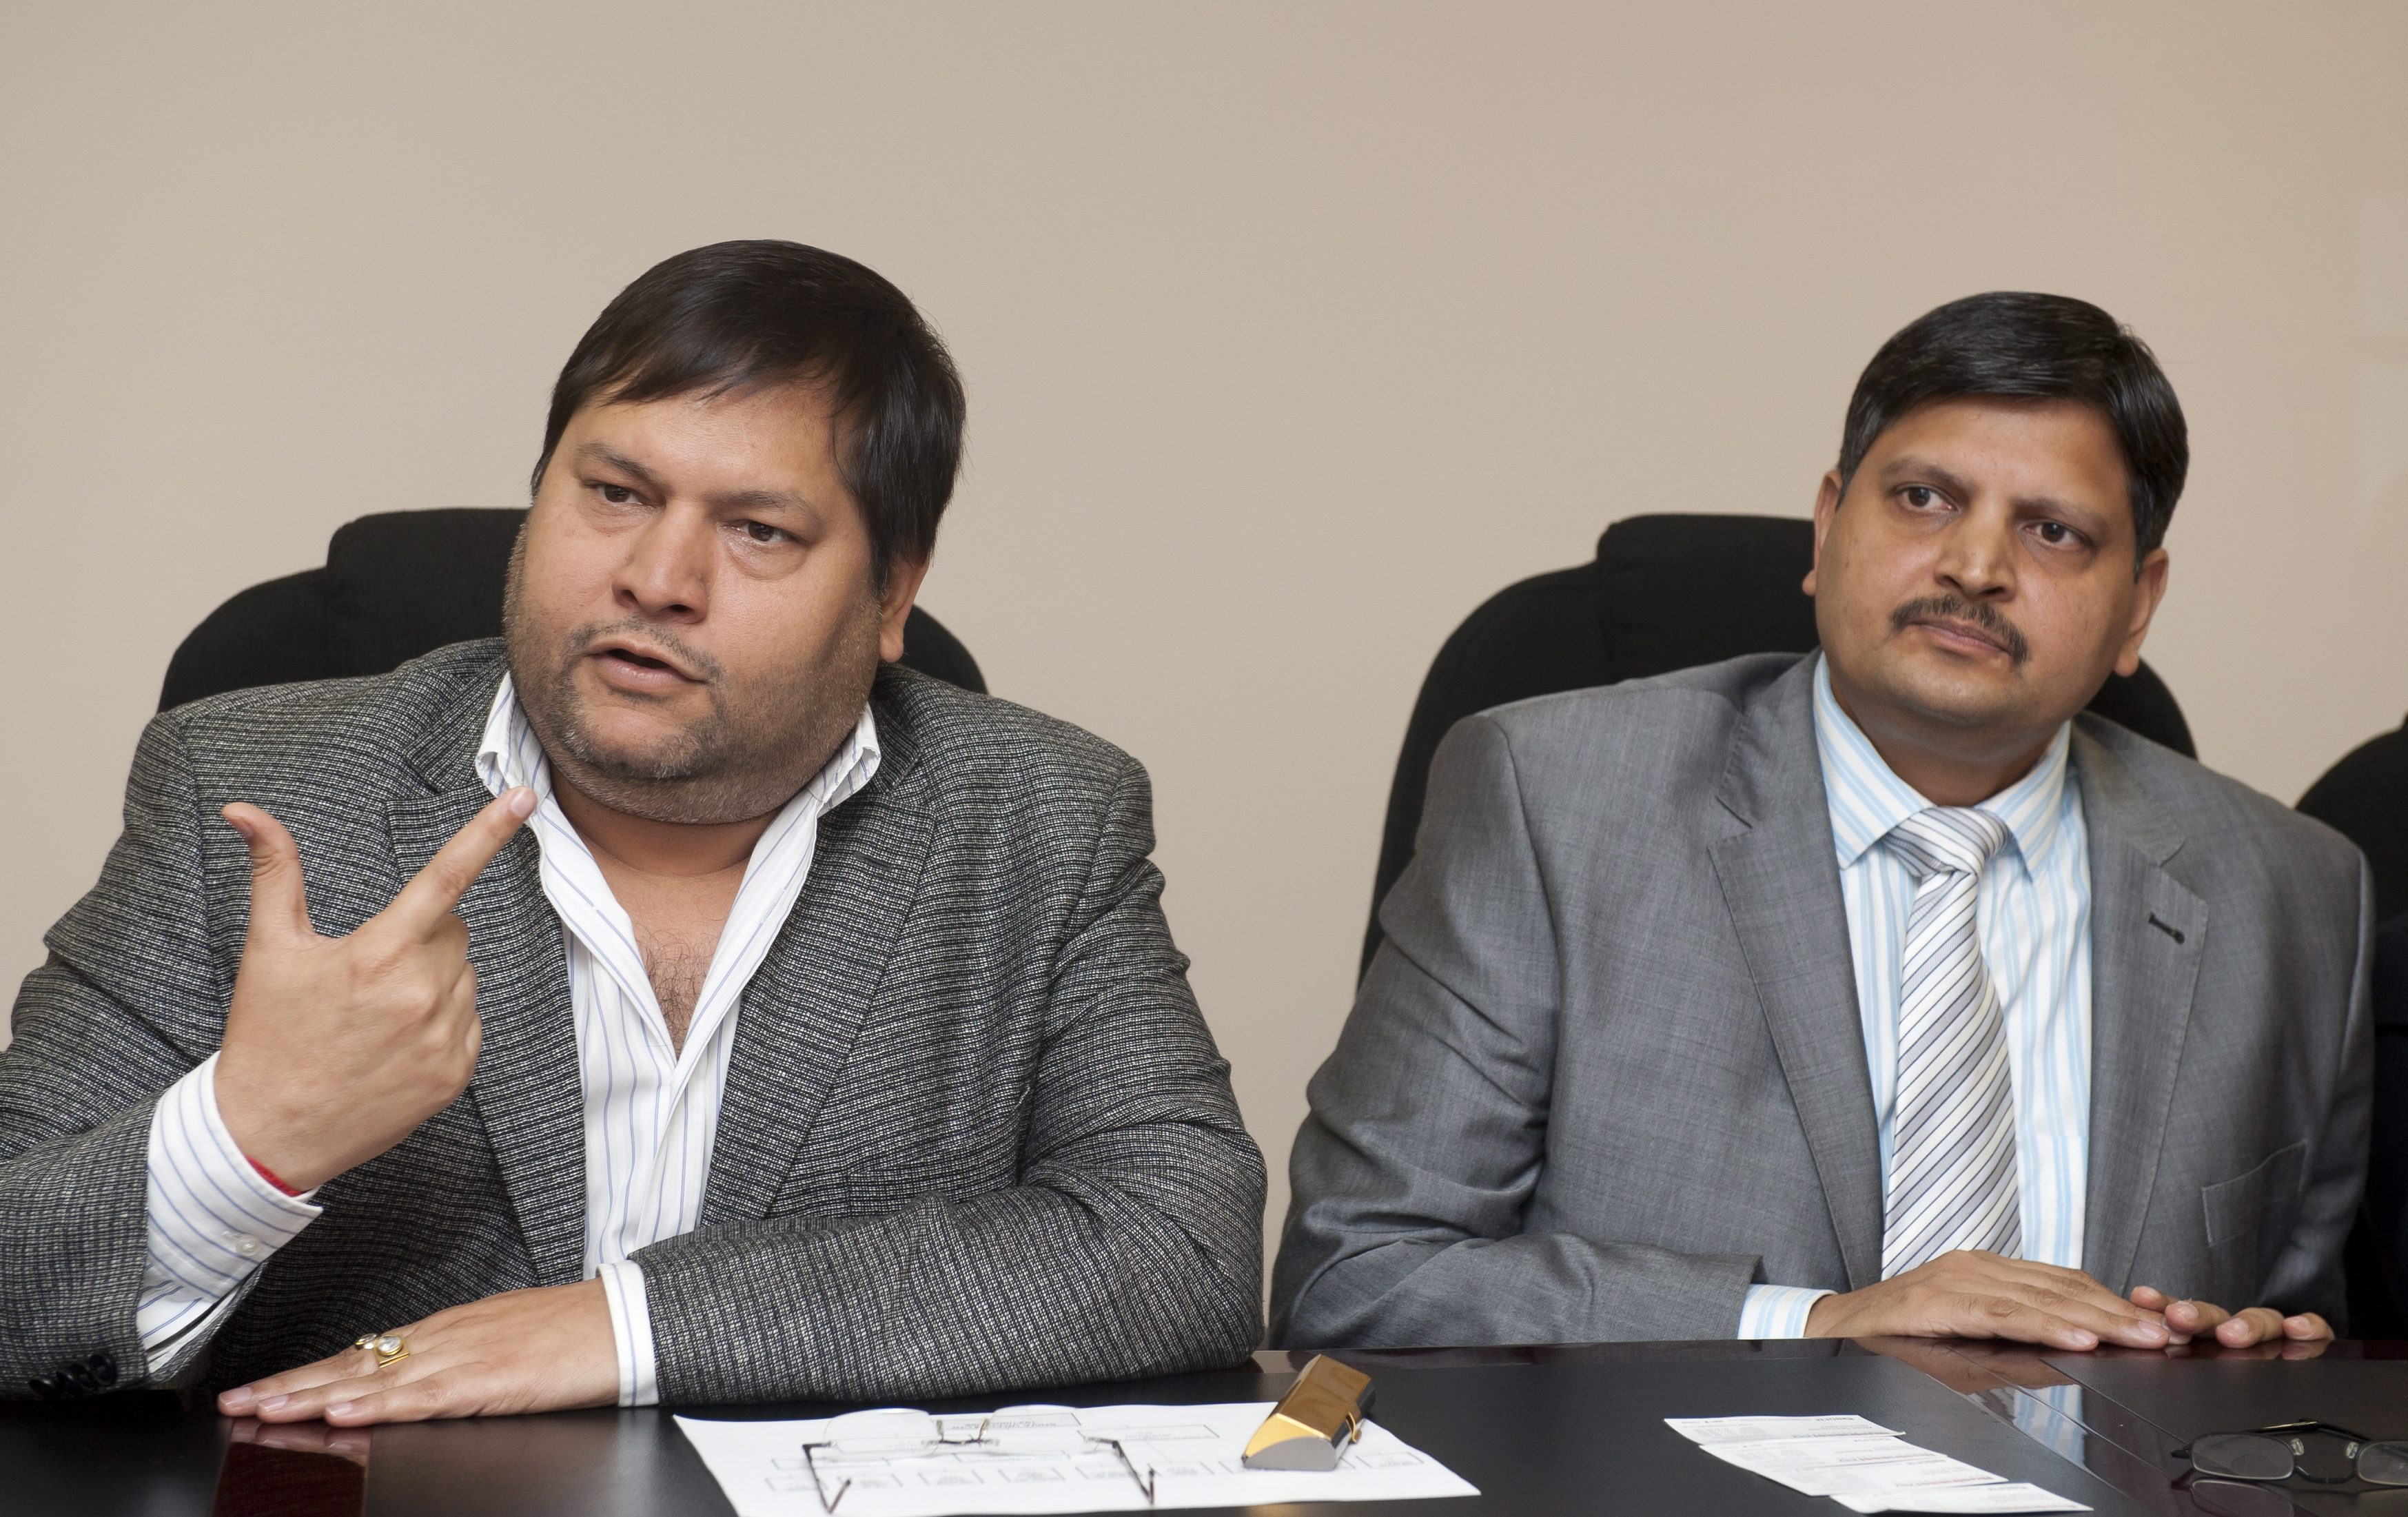 Indian businessmen Ajay Gupta, right, and younger brother Atul Gupta in Johannesburg on March 2, 2011